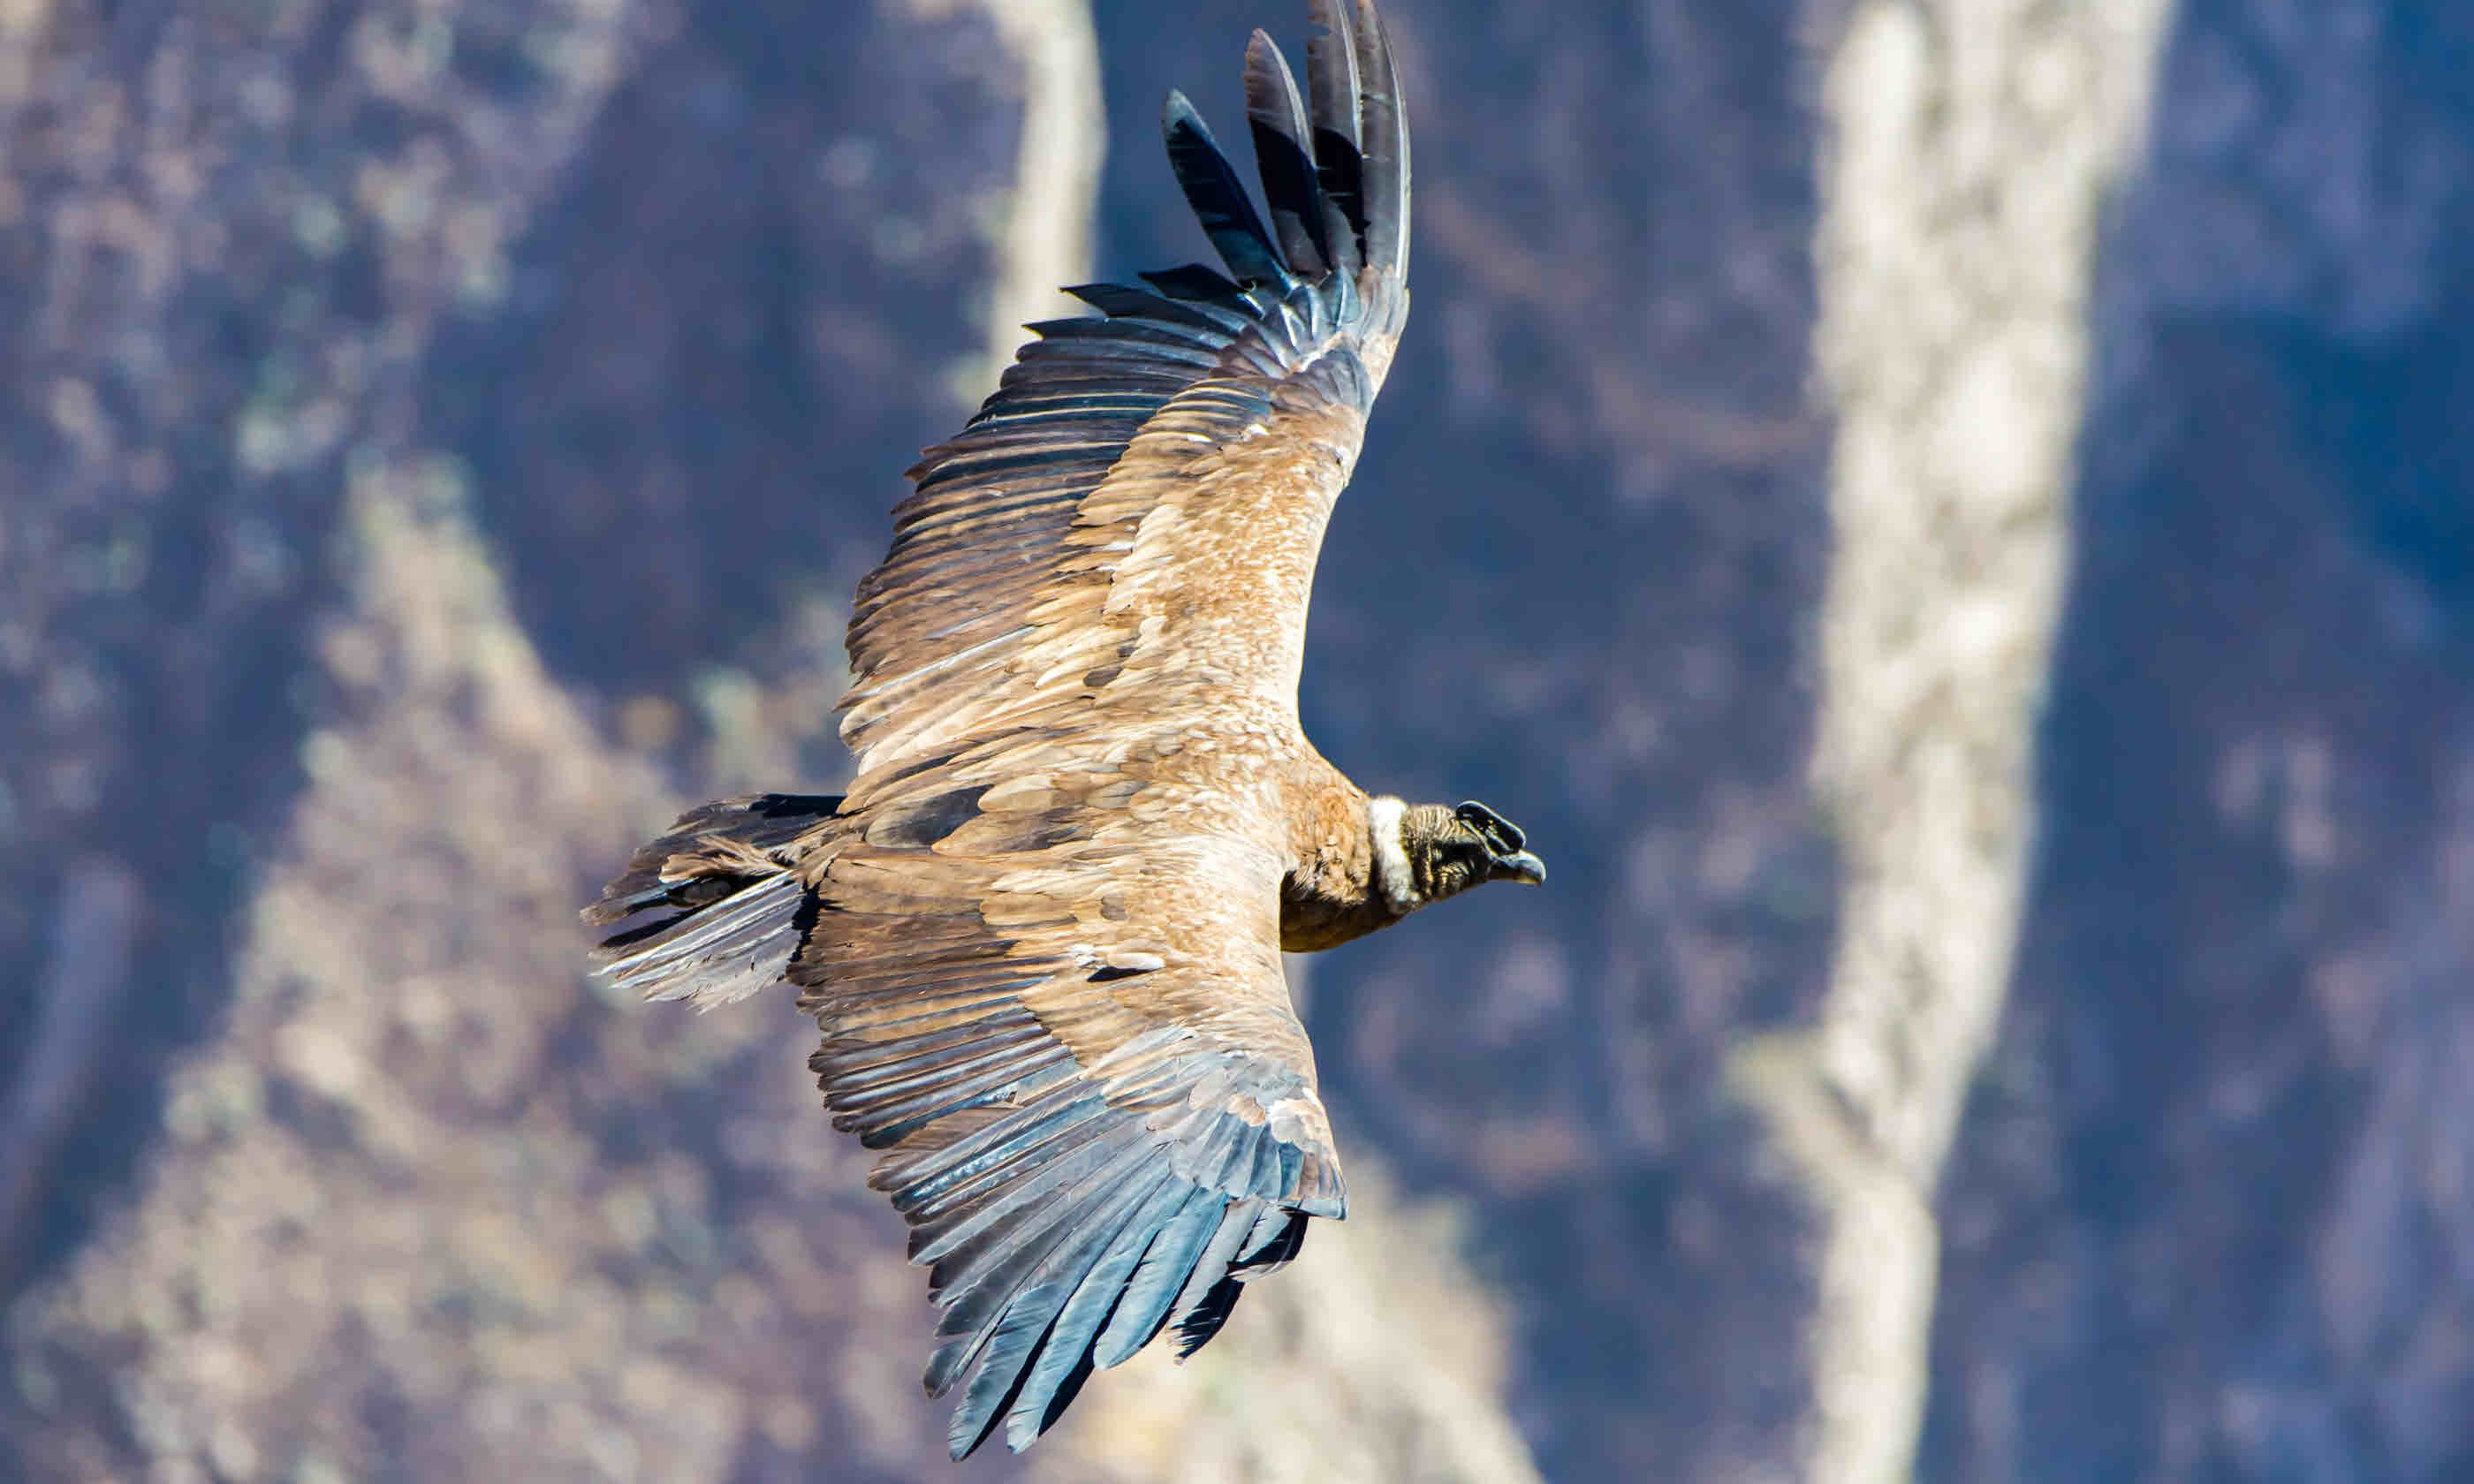 Flying condor over Colca canyon, Peru (Shutterstock)